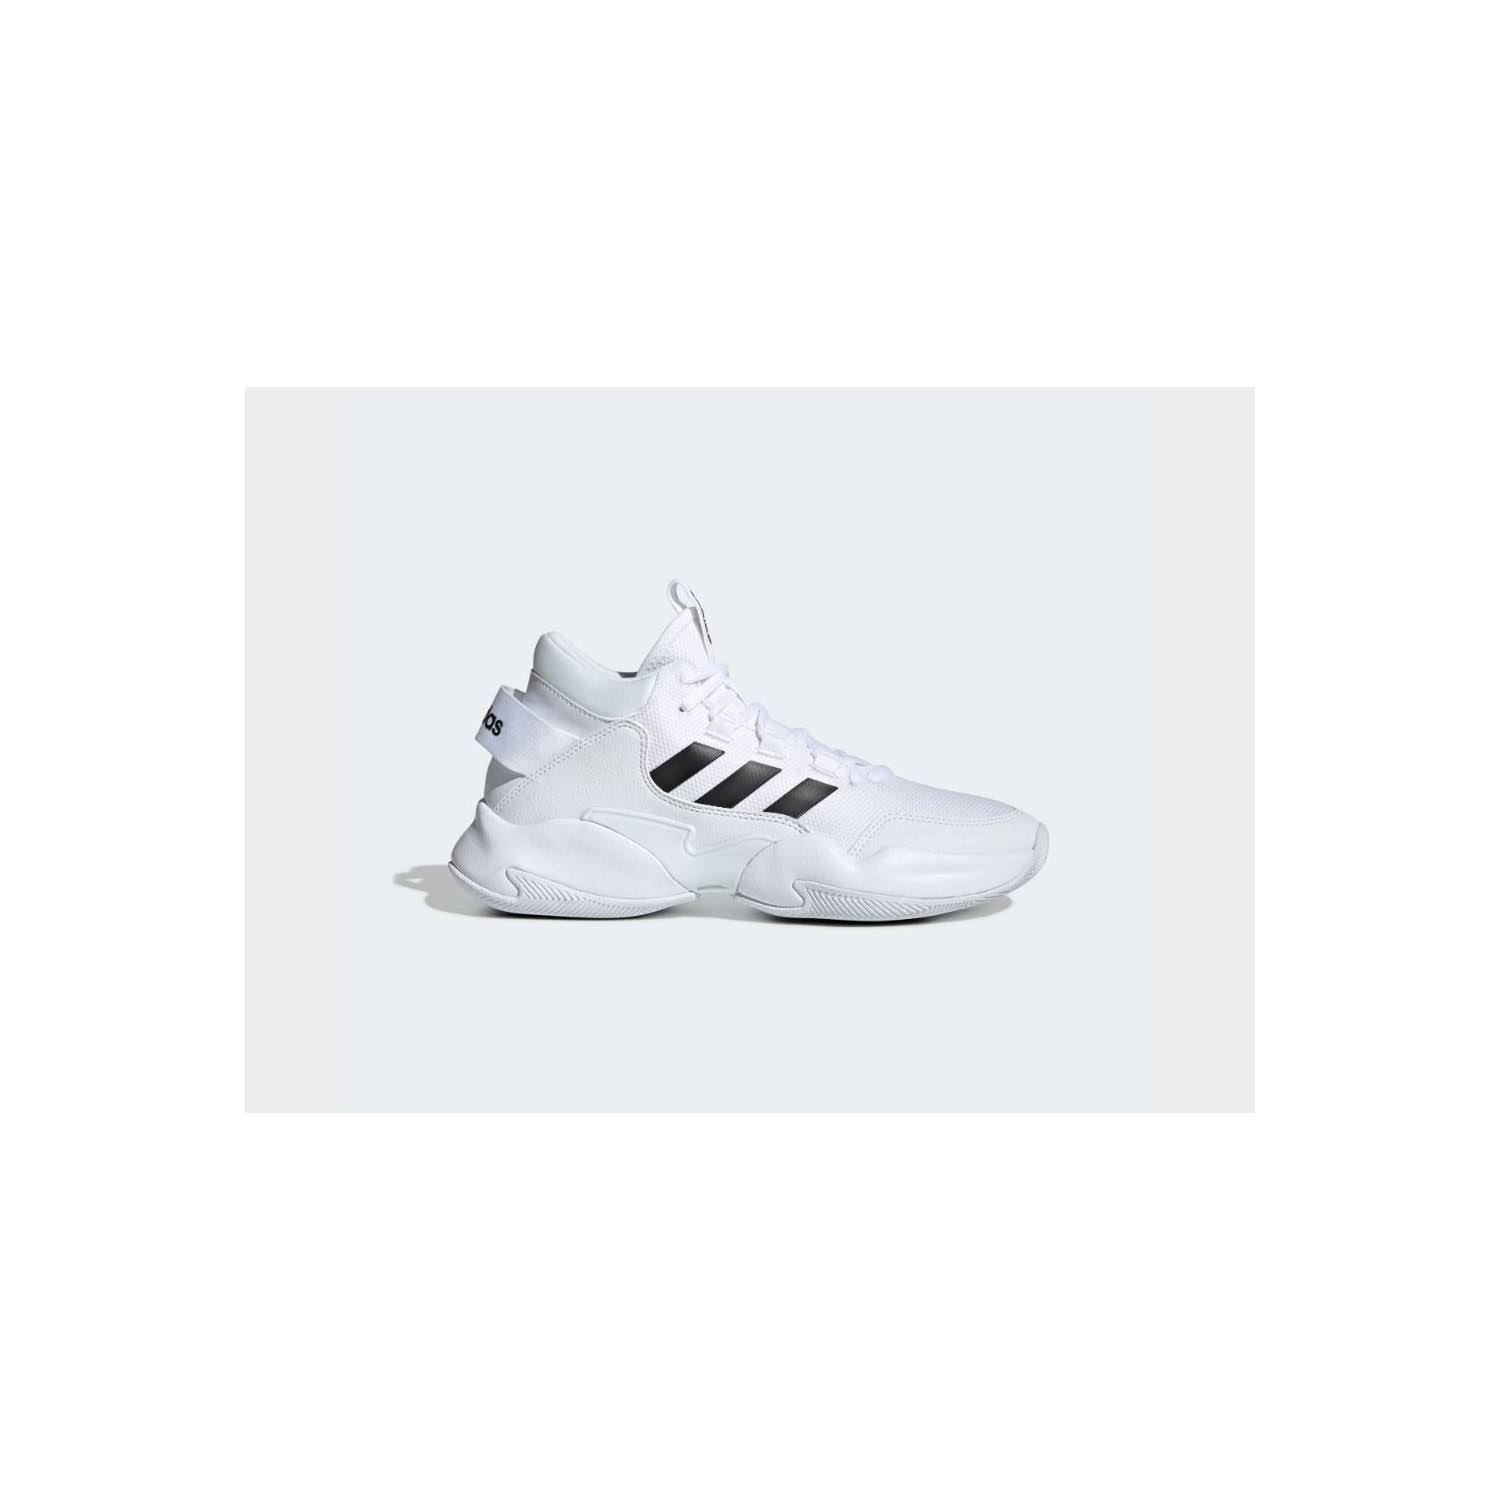 SUMMER SALES! Sneakers Adidas Streetcheck Blanco Male - Size 43